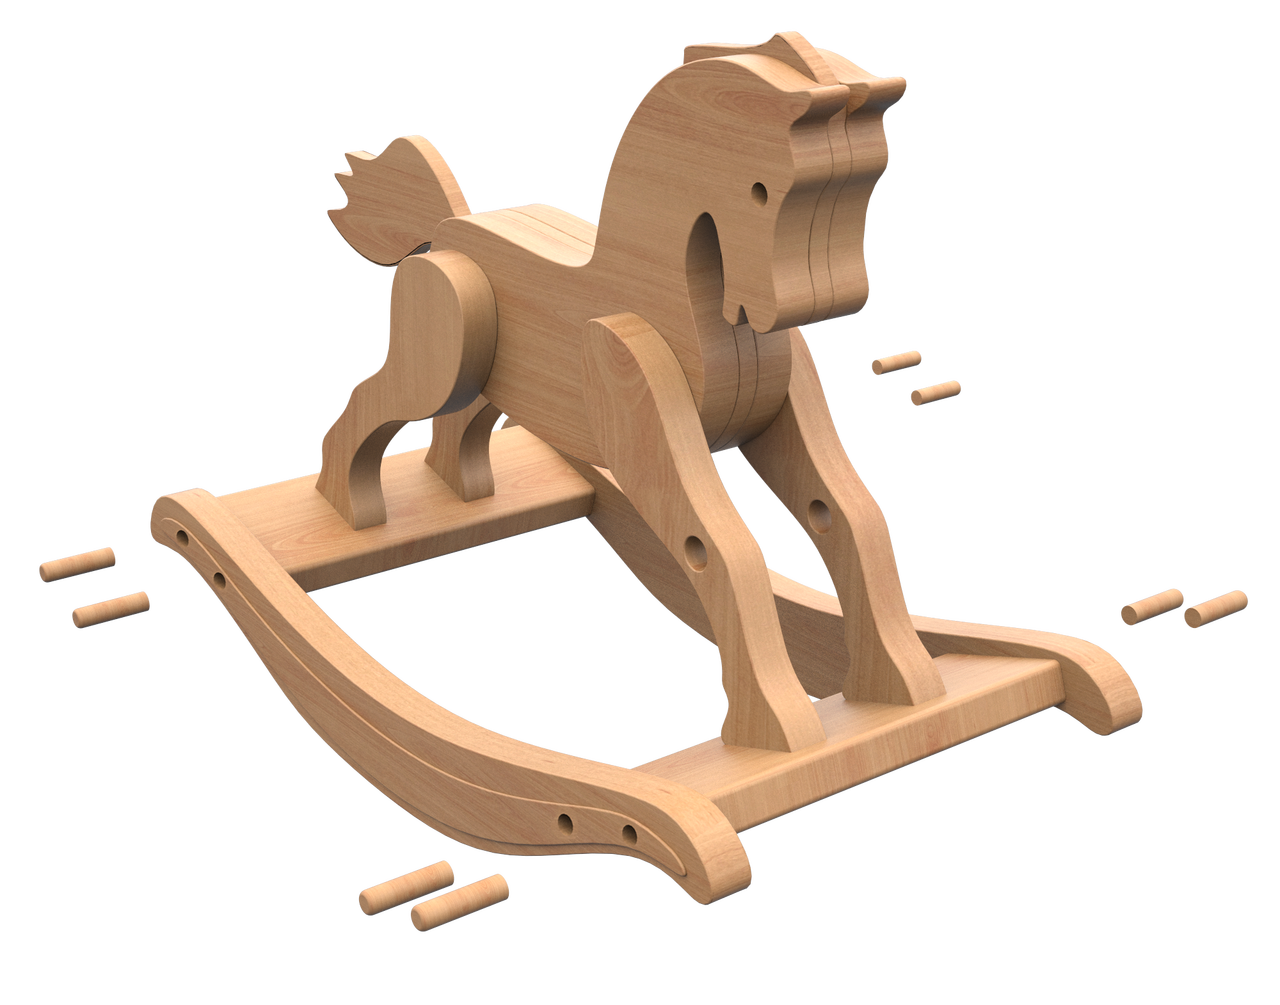 antique 1890 rocking horse wood toy plans (pdf download)